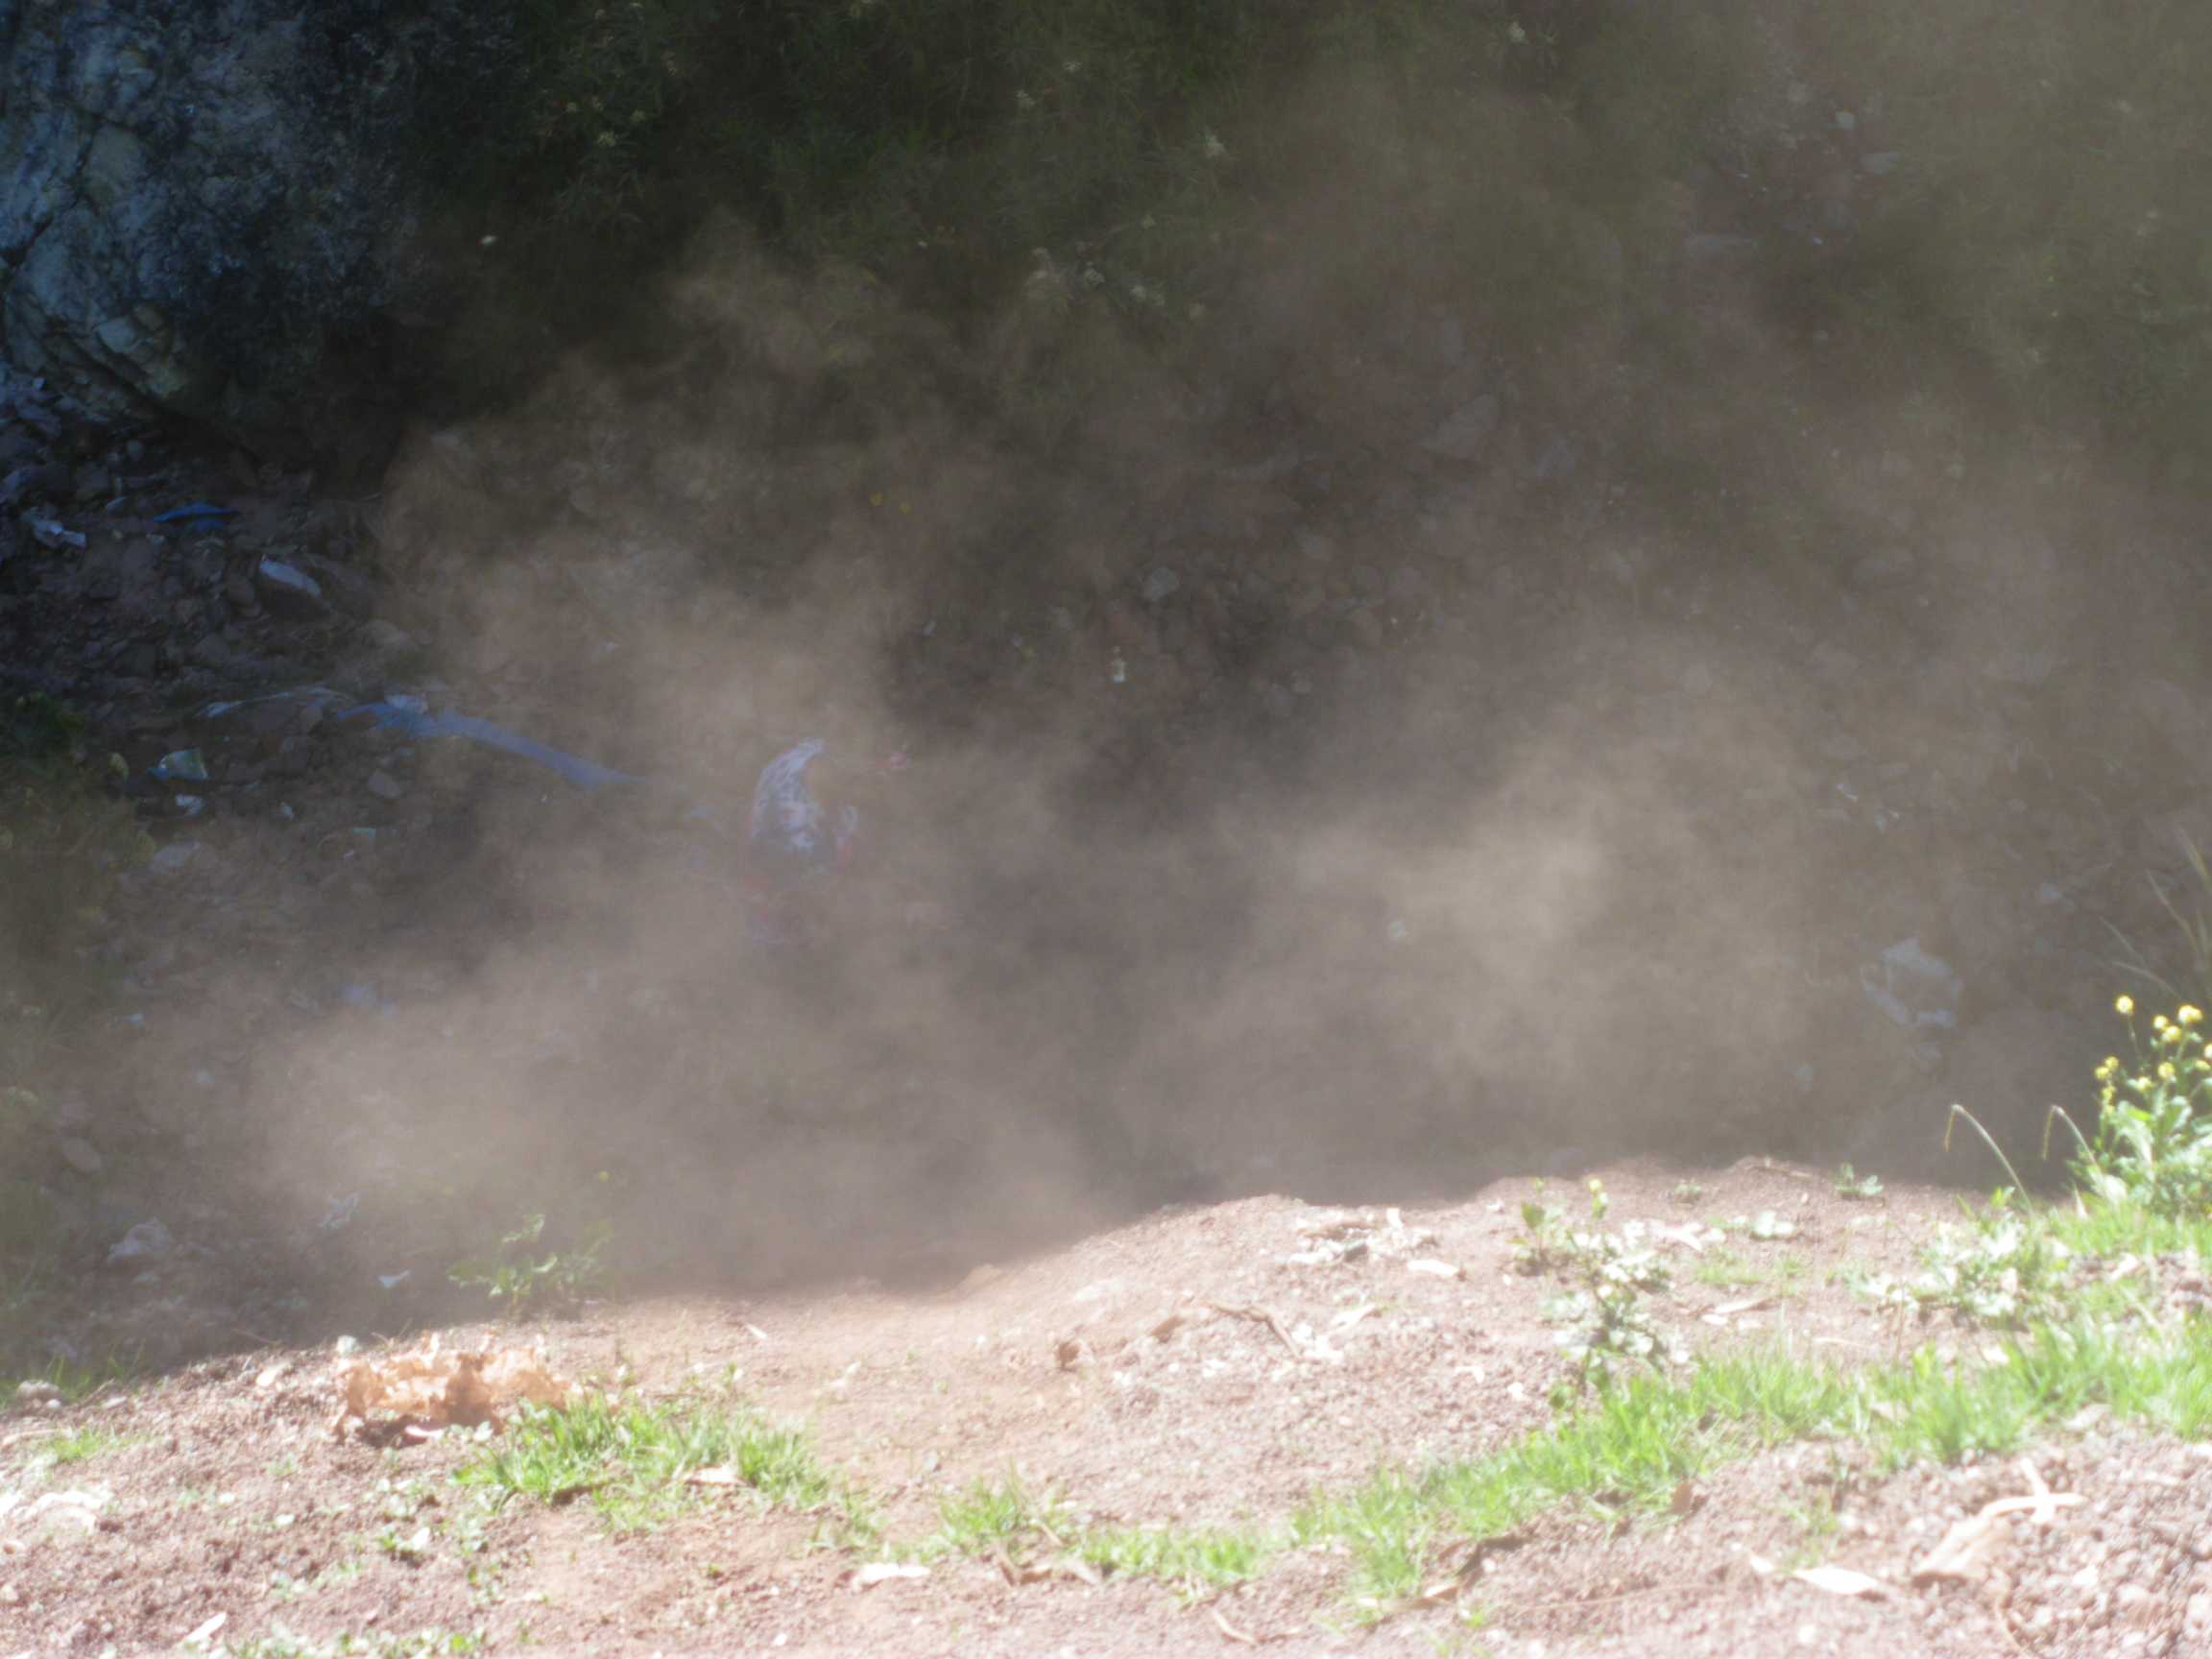 Laura´s dust cloud, and if you look closely you can see the woman herself enshrouded.